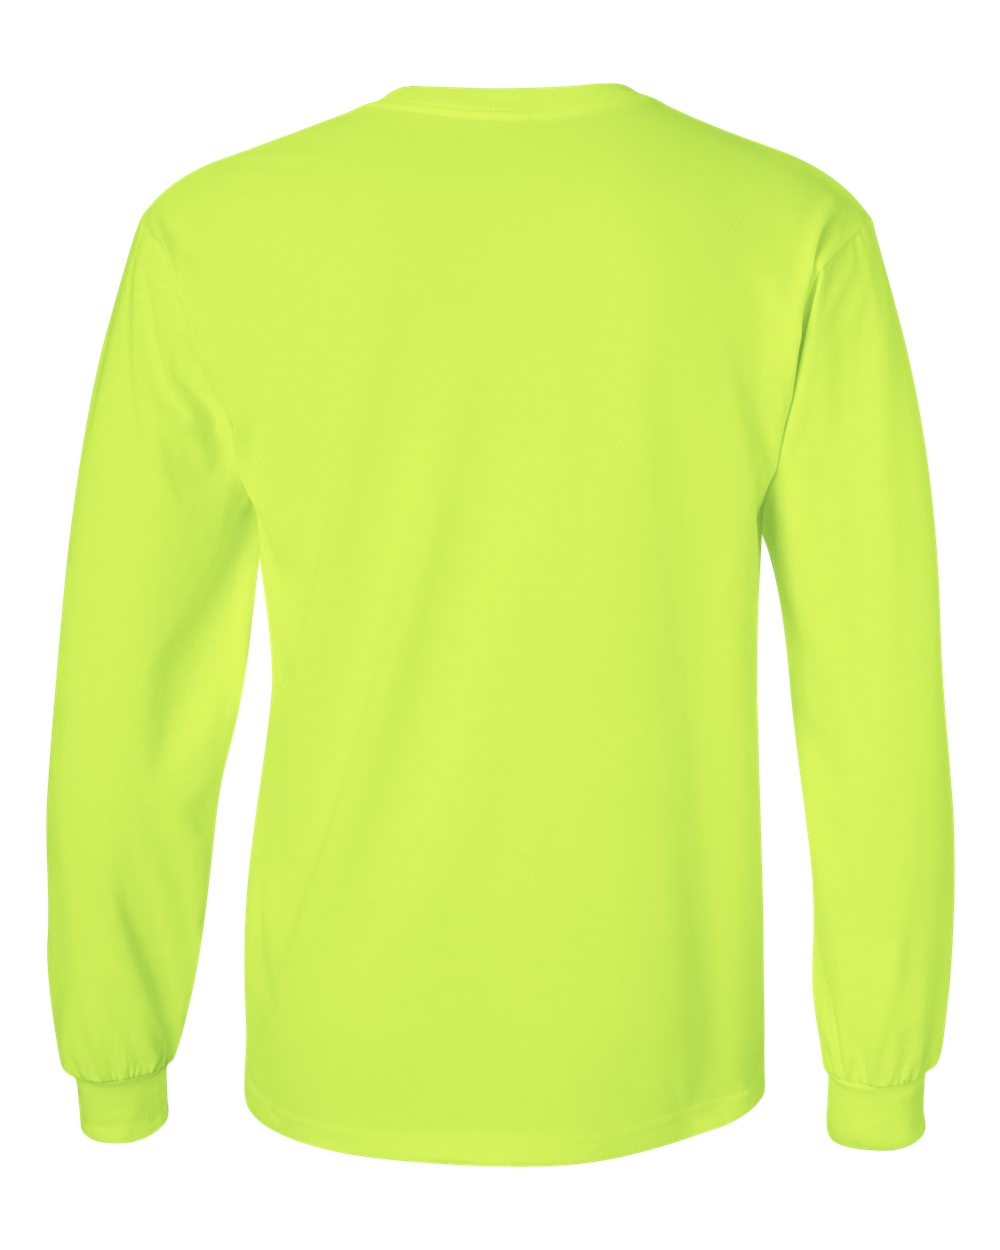 Gildan-Men-039-s-Ultra-Cotton-6-oz-Long-Sleeve-T-Shirt-G240-S-5XL thumbnail 89